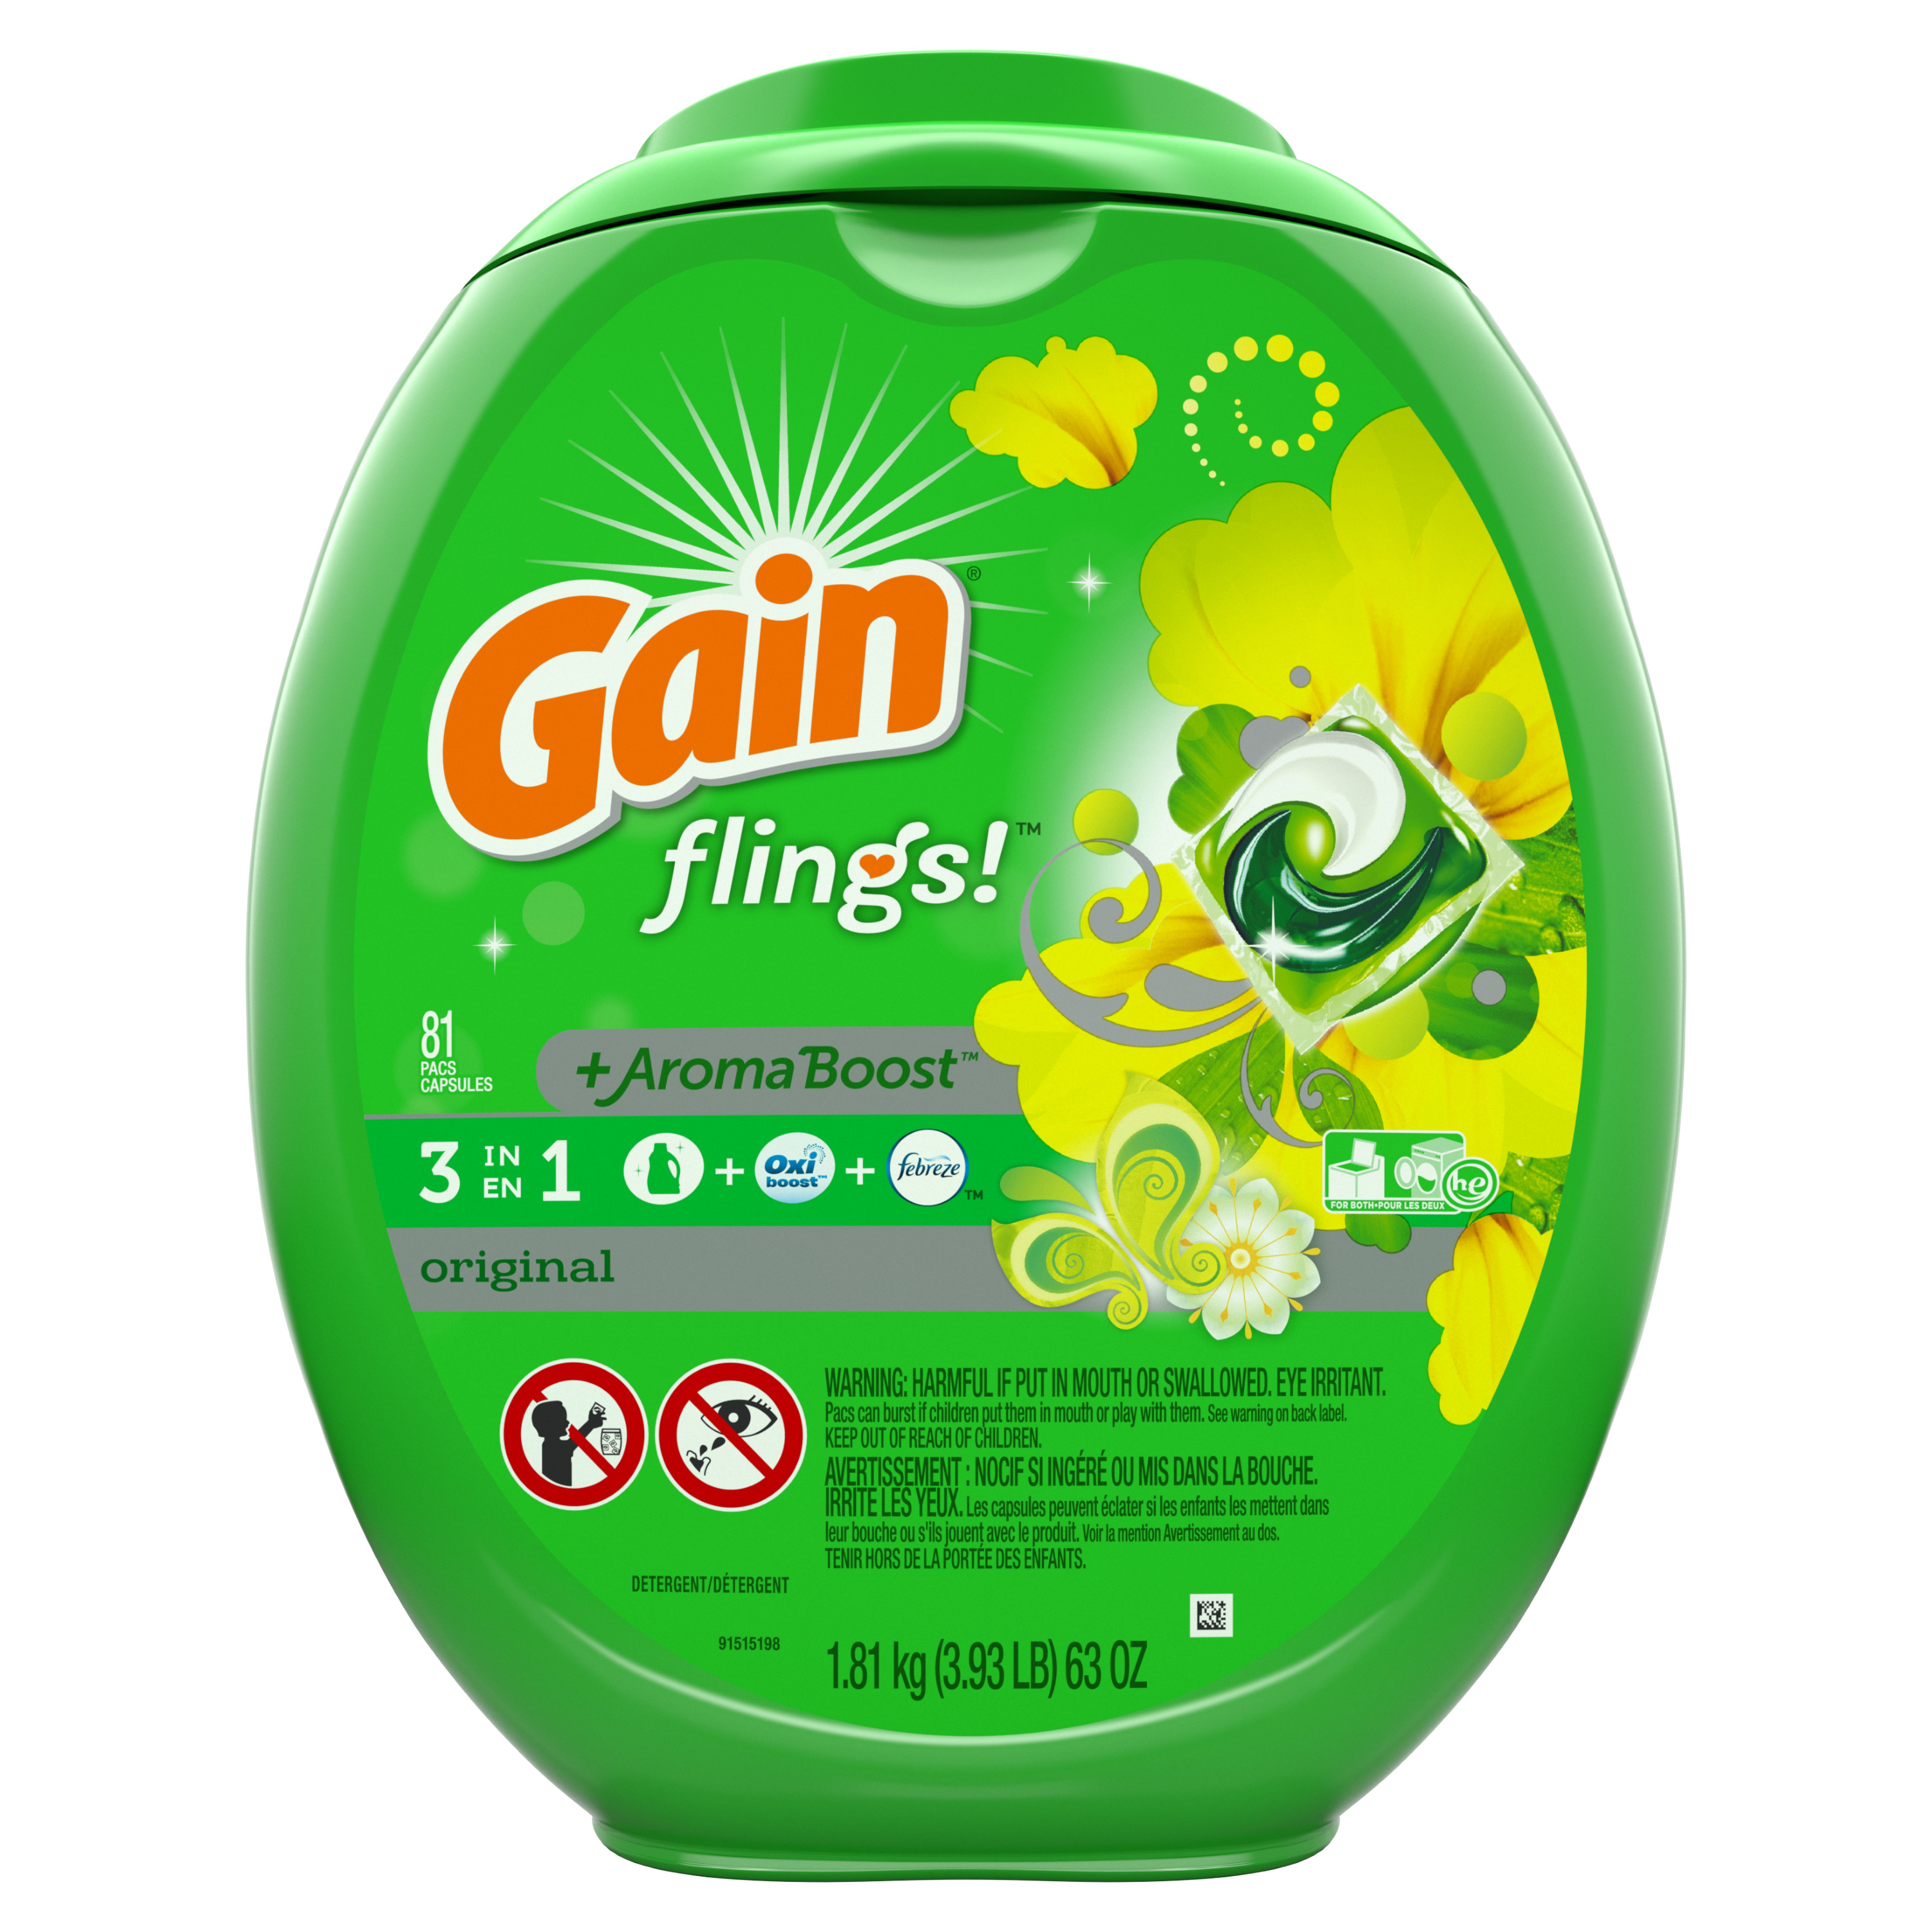 Gain flings! + AromaBoost, Laundry Detergent Pacs, Original, 81 Count